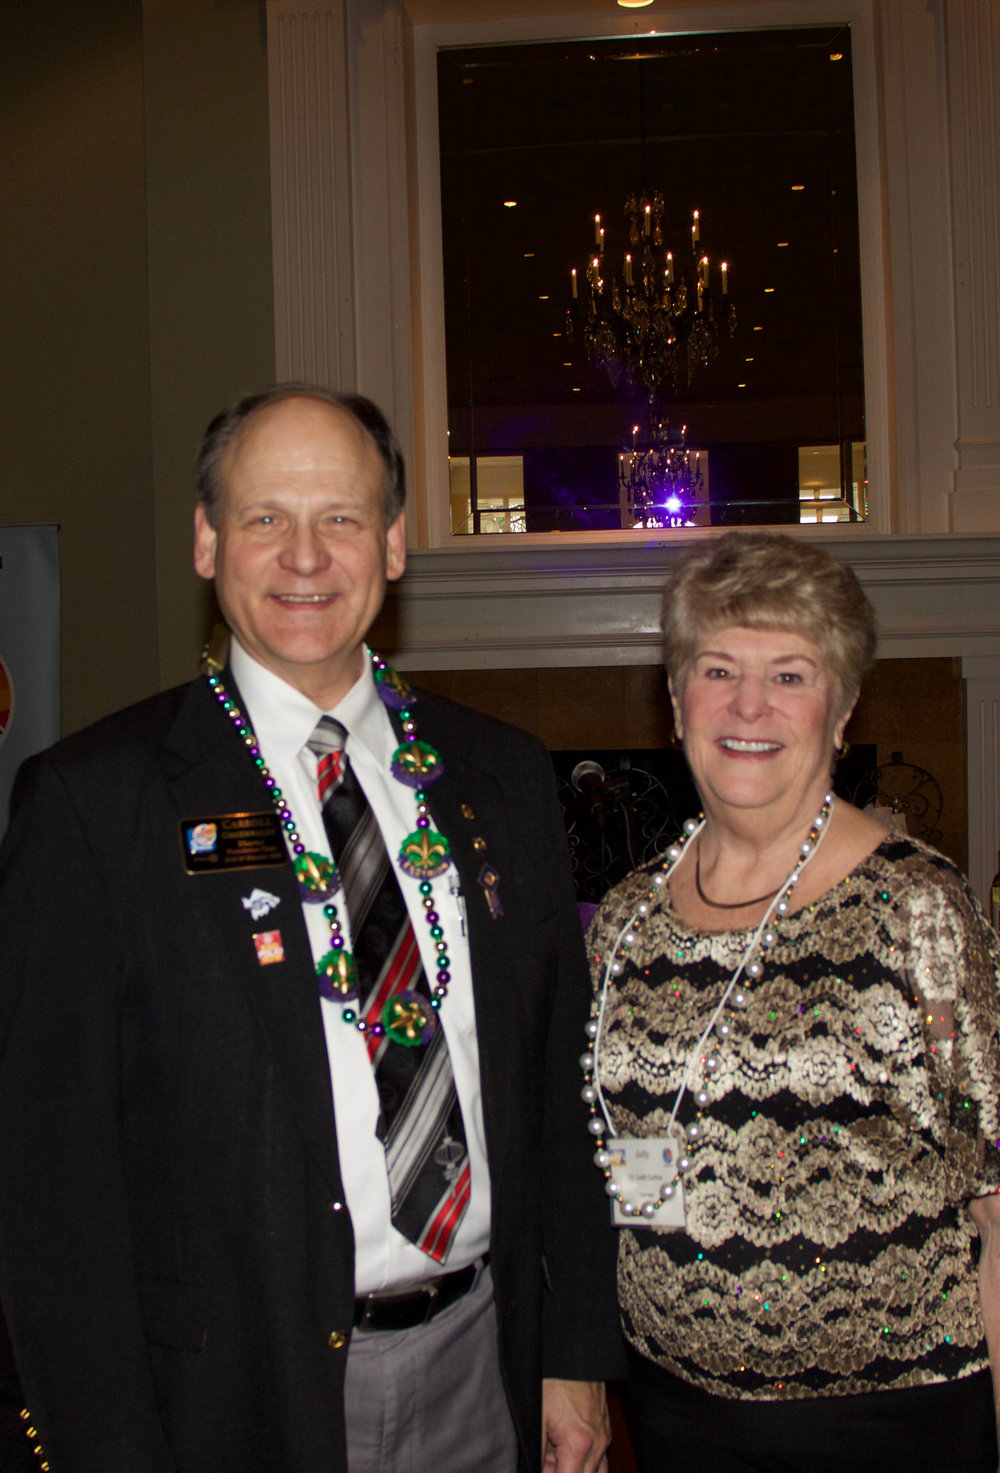 Carroll Greenwaldt and Judy Guthrie